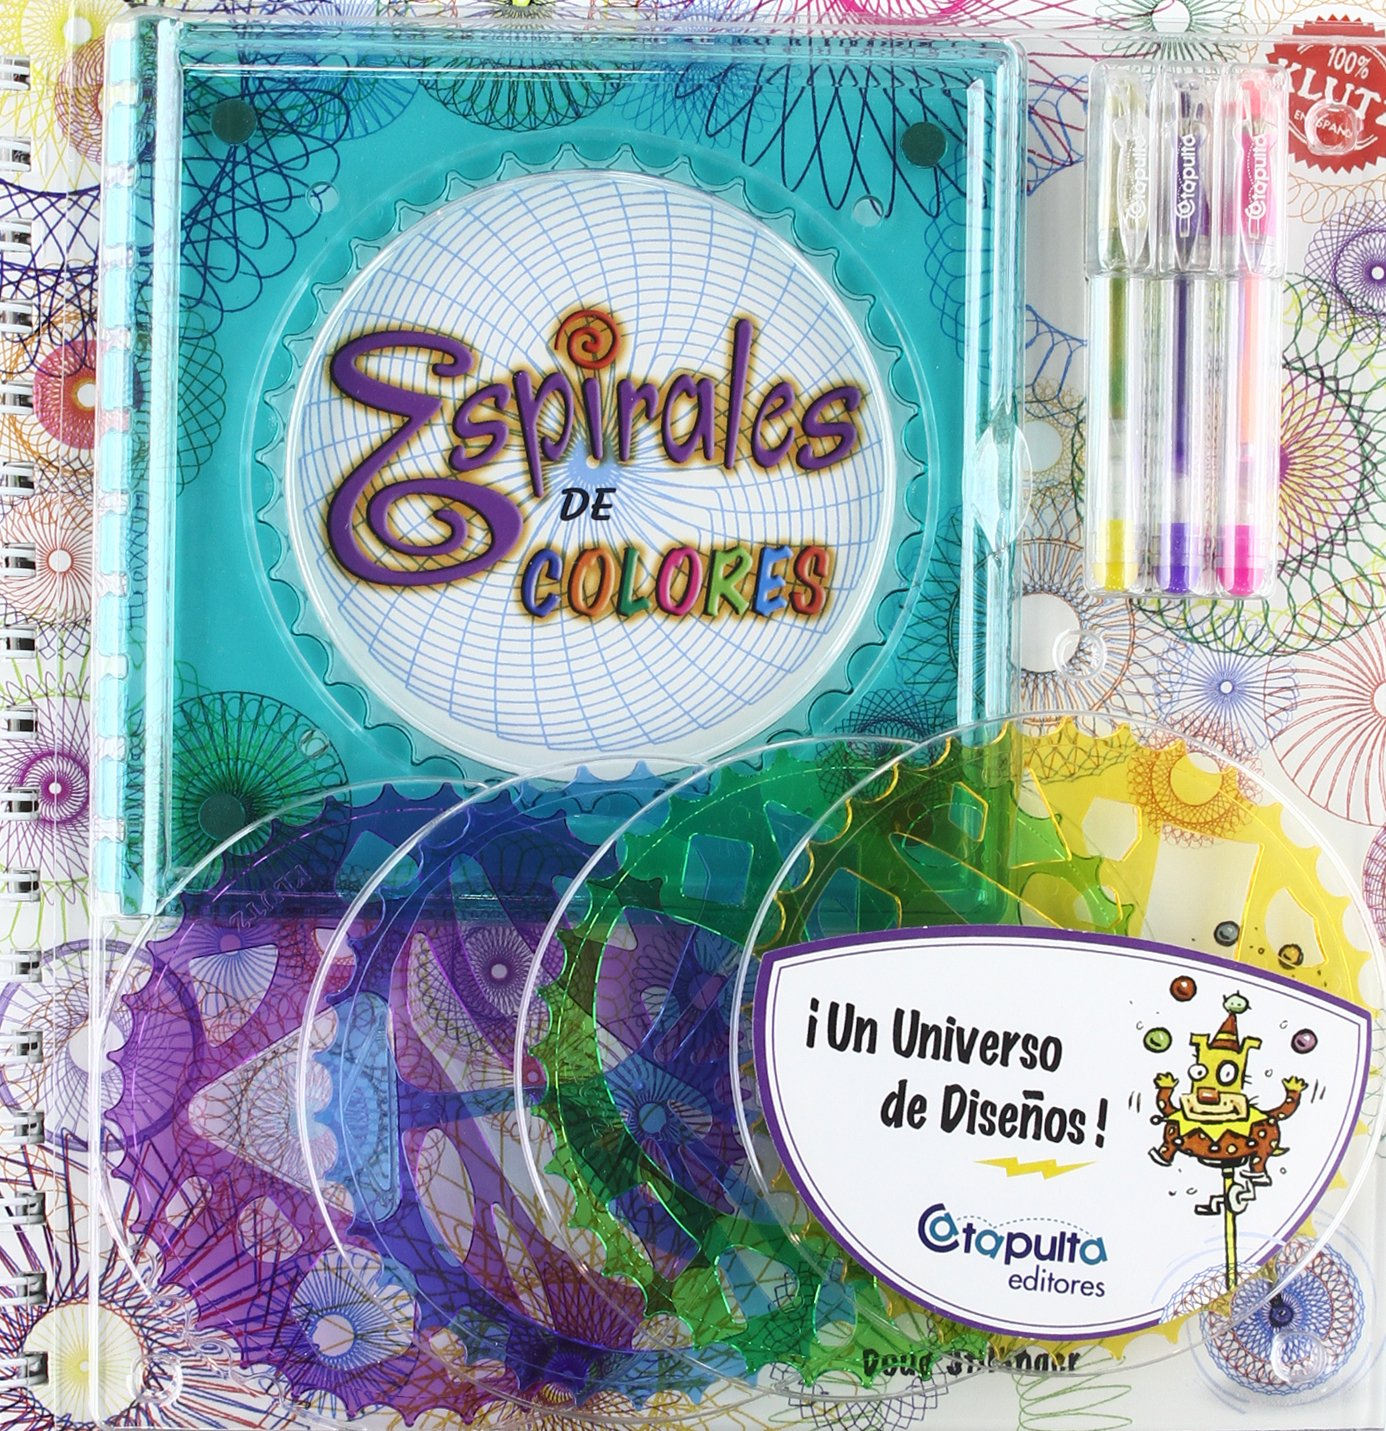 Espirales de colores Spiral-bound – October 30, 2004